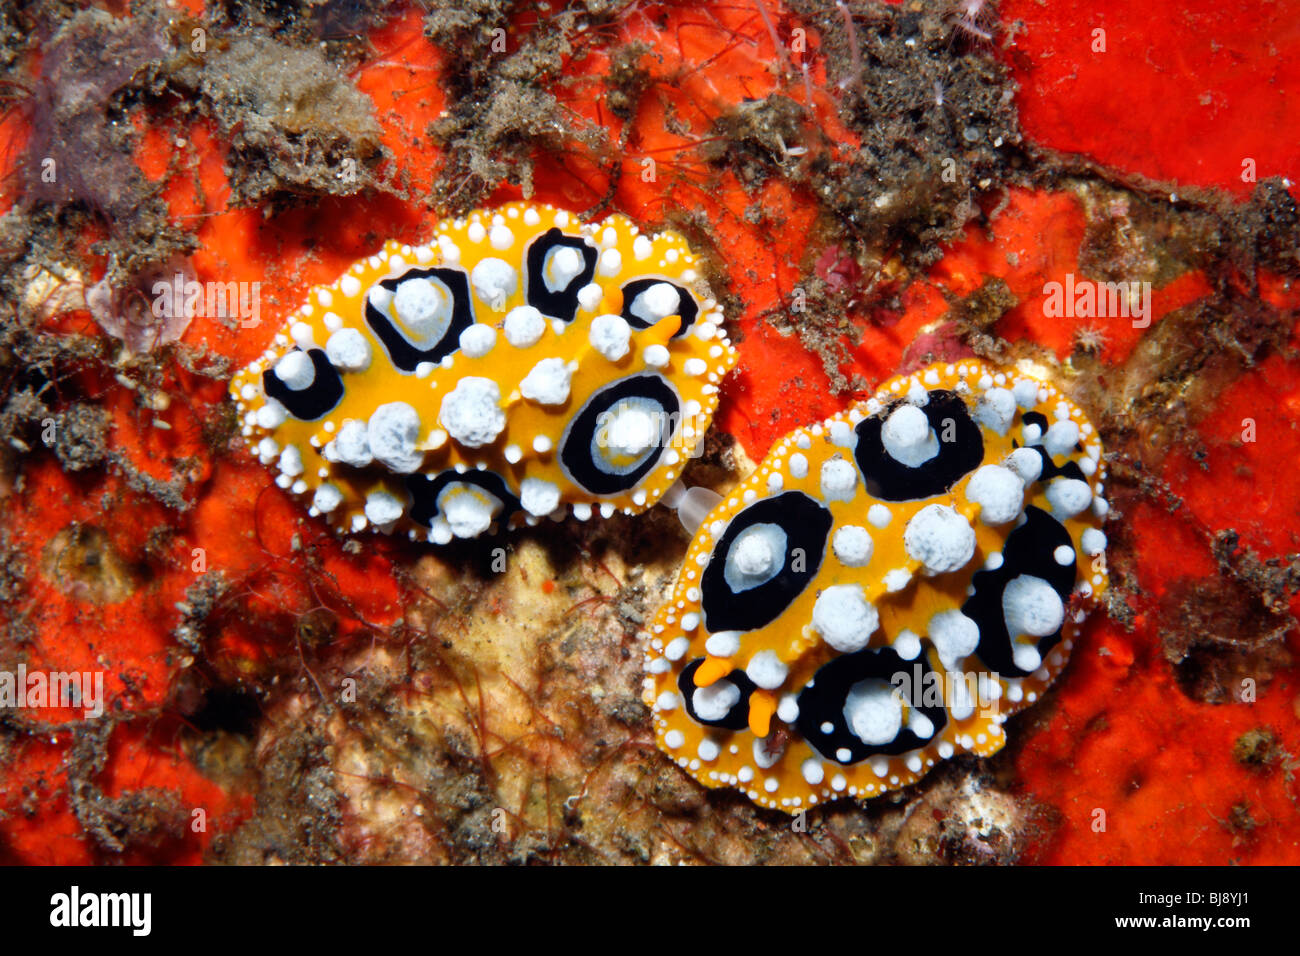 mating-nudibranchs-phyllidia-ocellatathe-sex-organs-are-visible-tulamben-BJ8YJ1.jpg